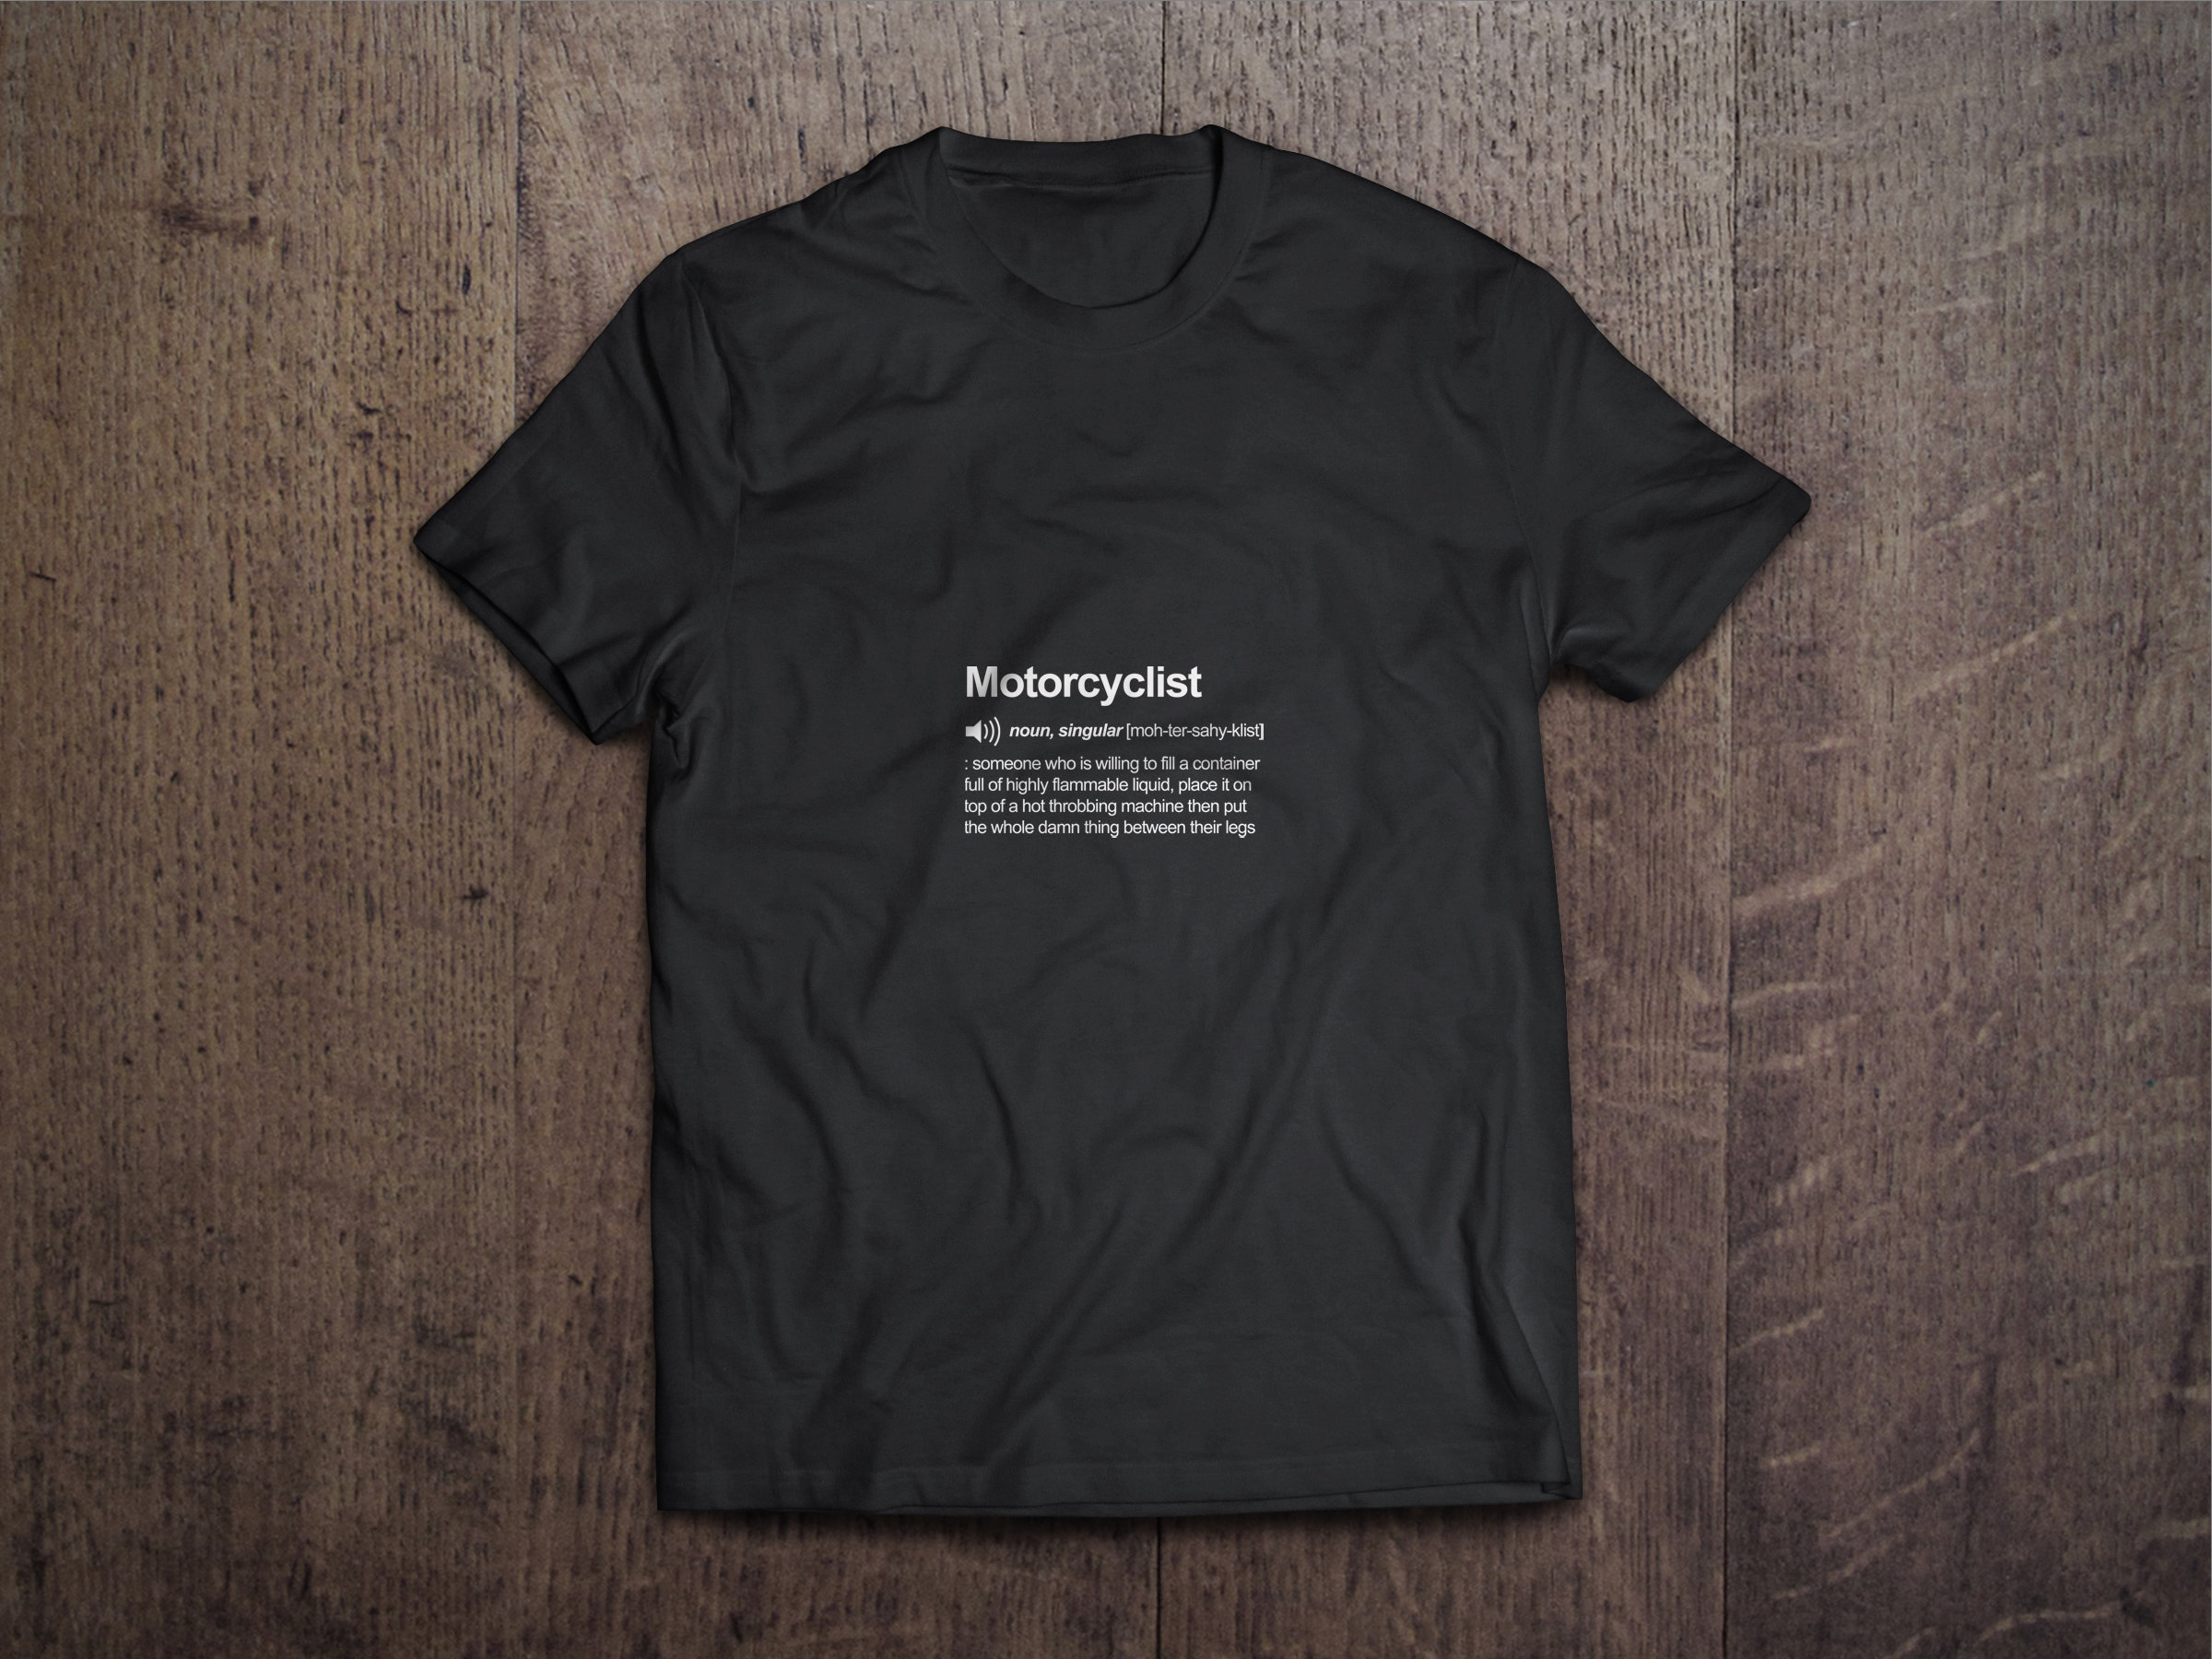 Motorcyclist Definition Chest Candy Motorcyclist Tshirt